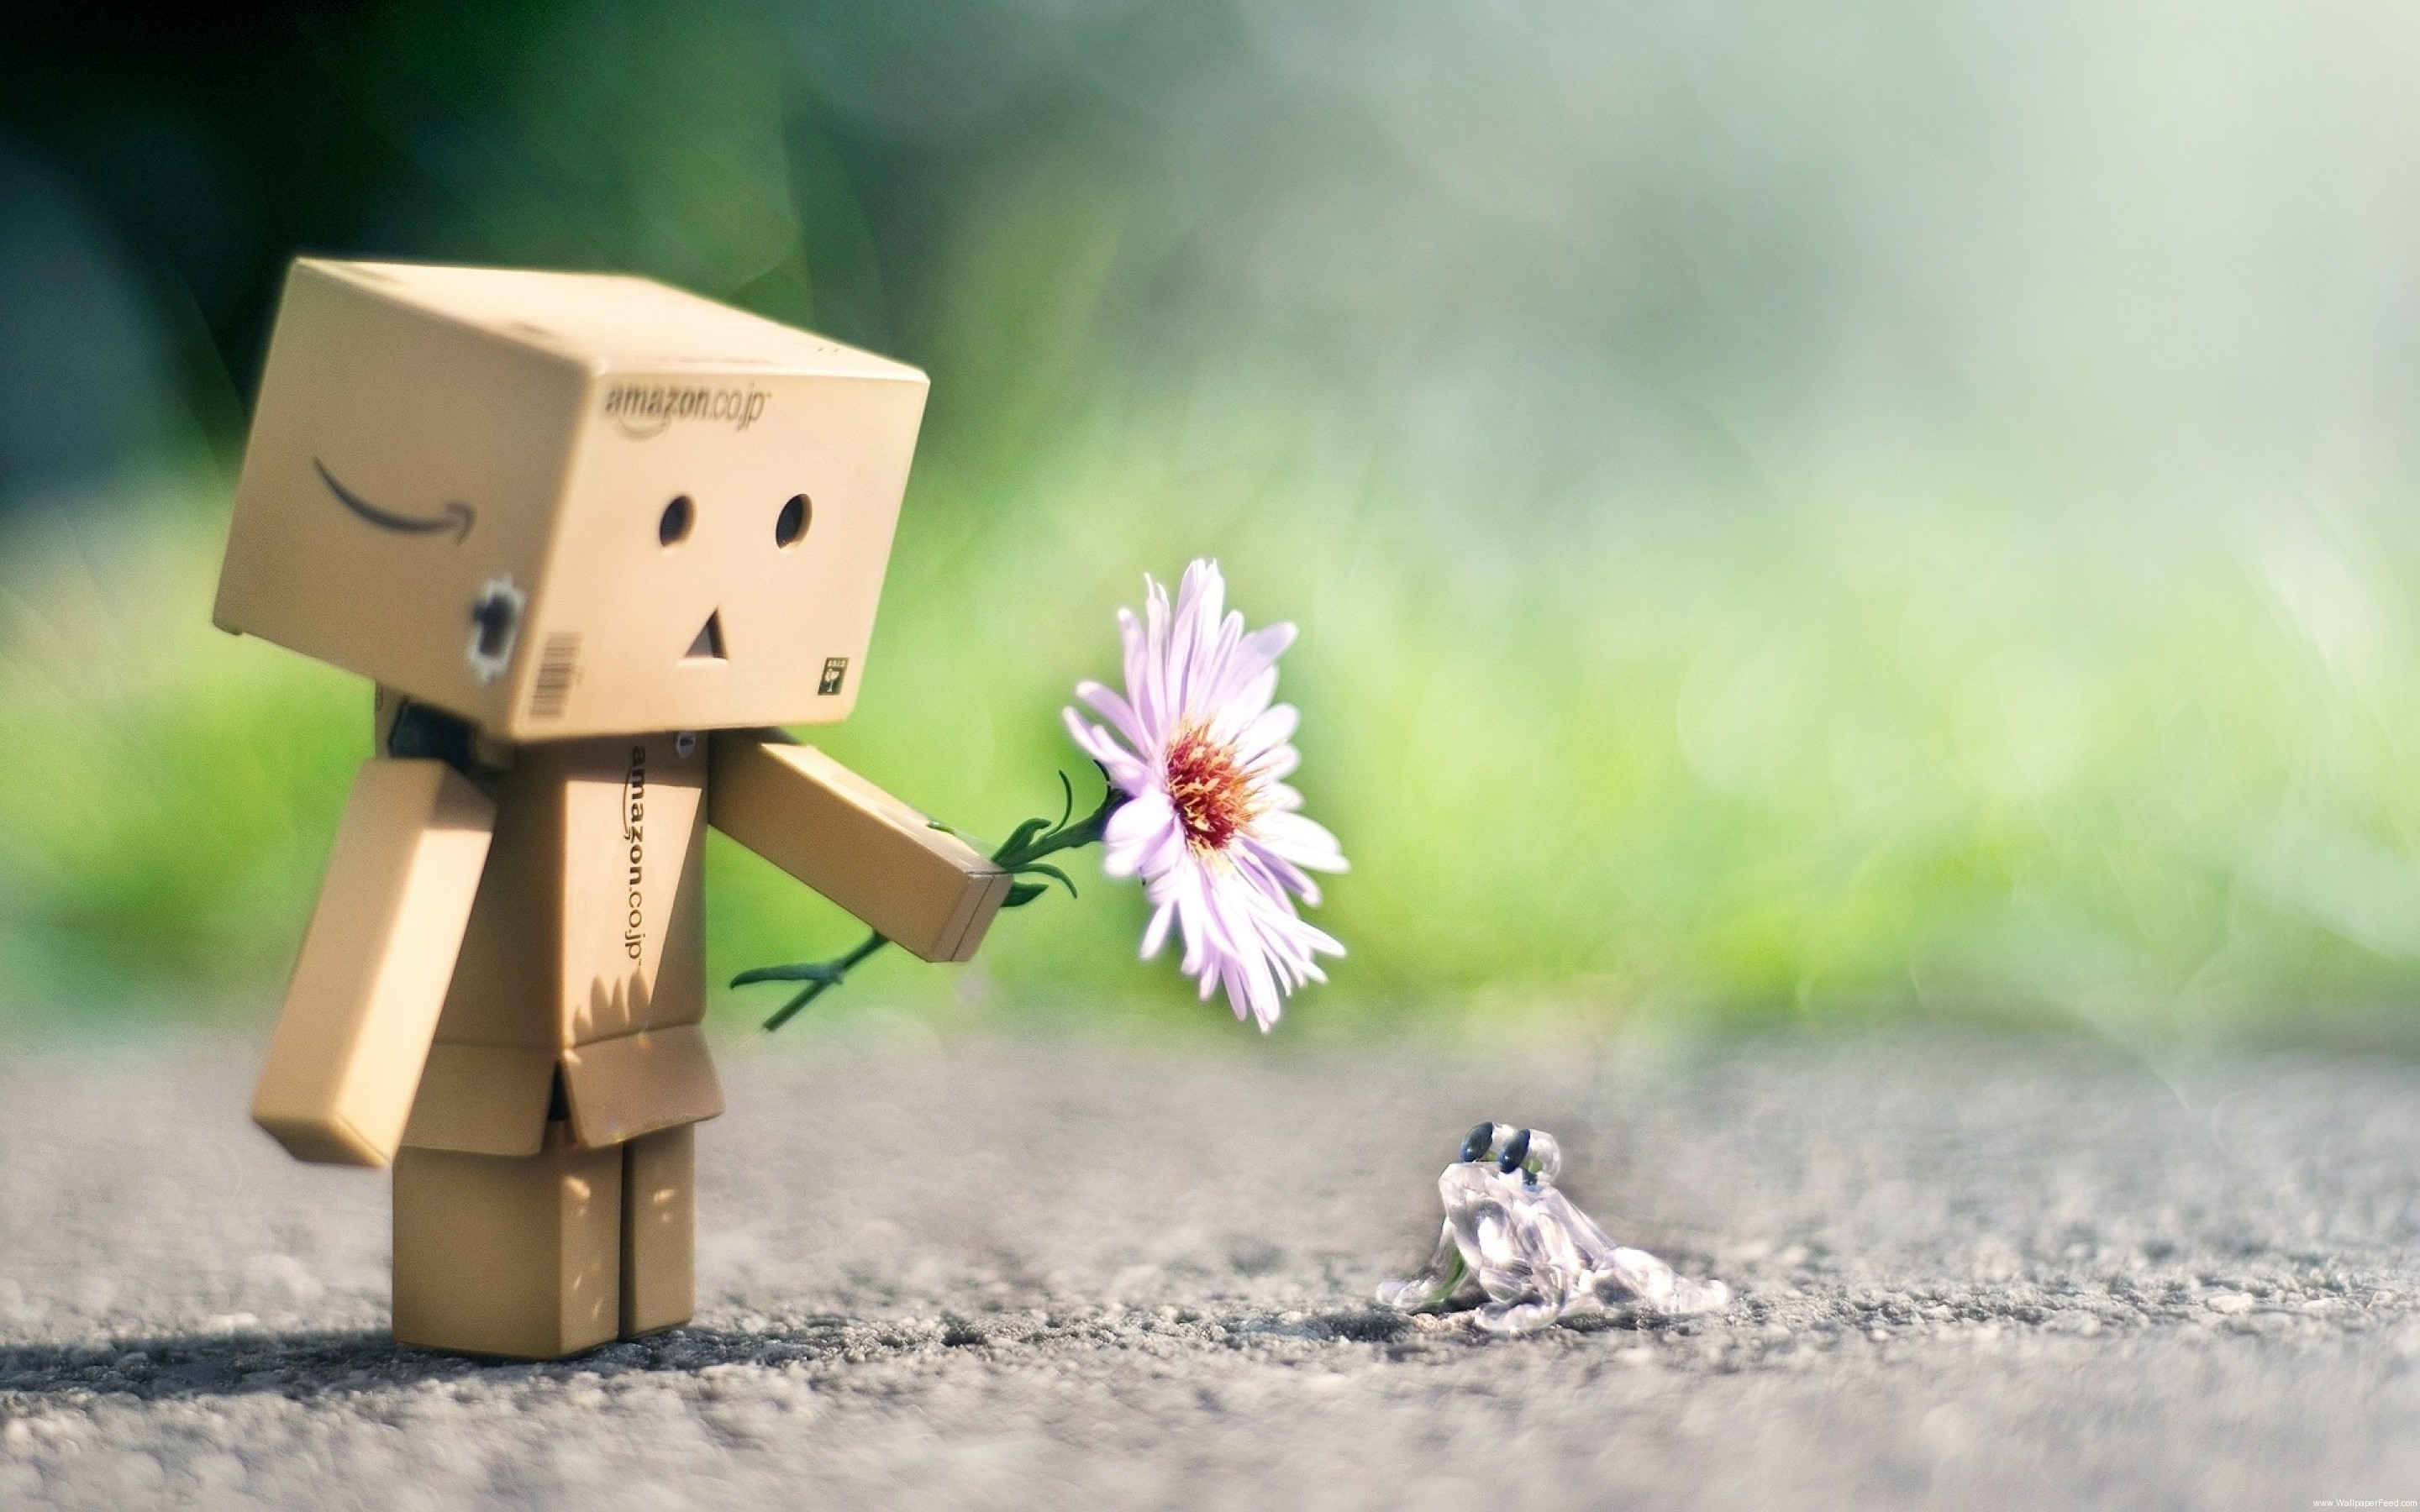 2880x1800 Cute Danbo Flower Frog Friendship Wallpaper